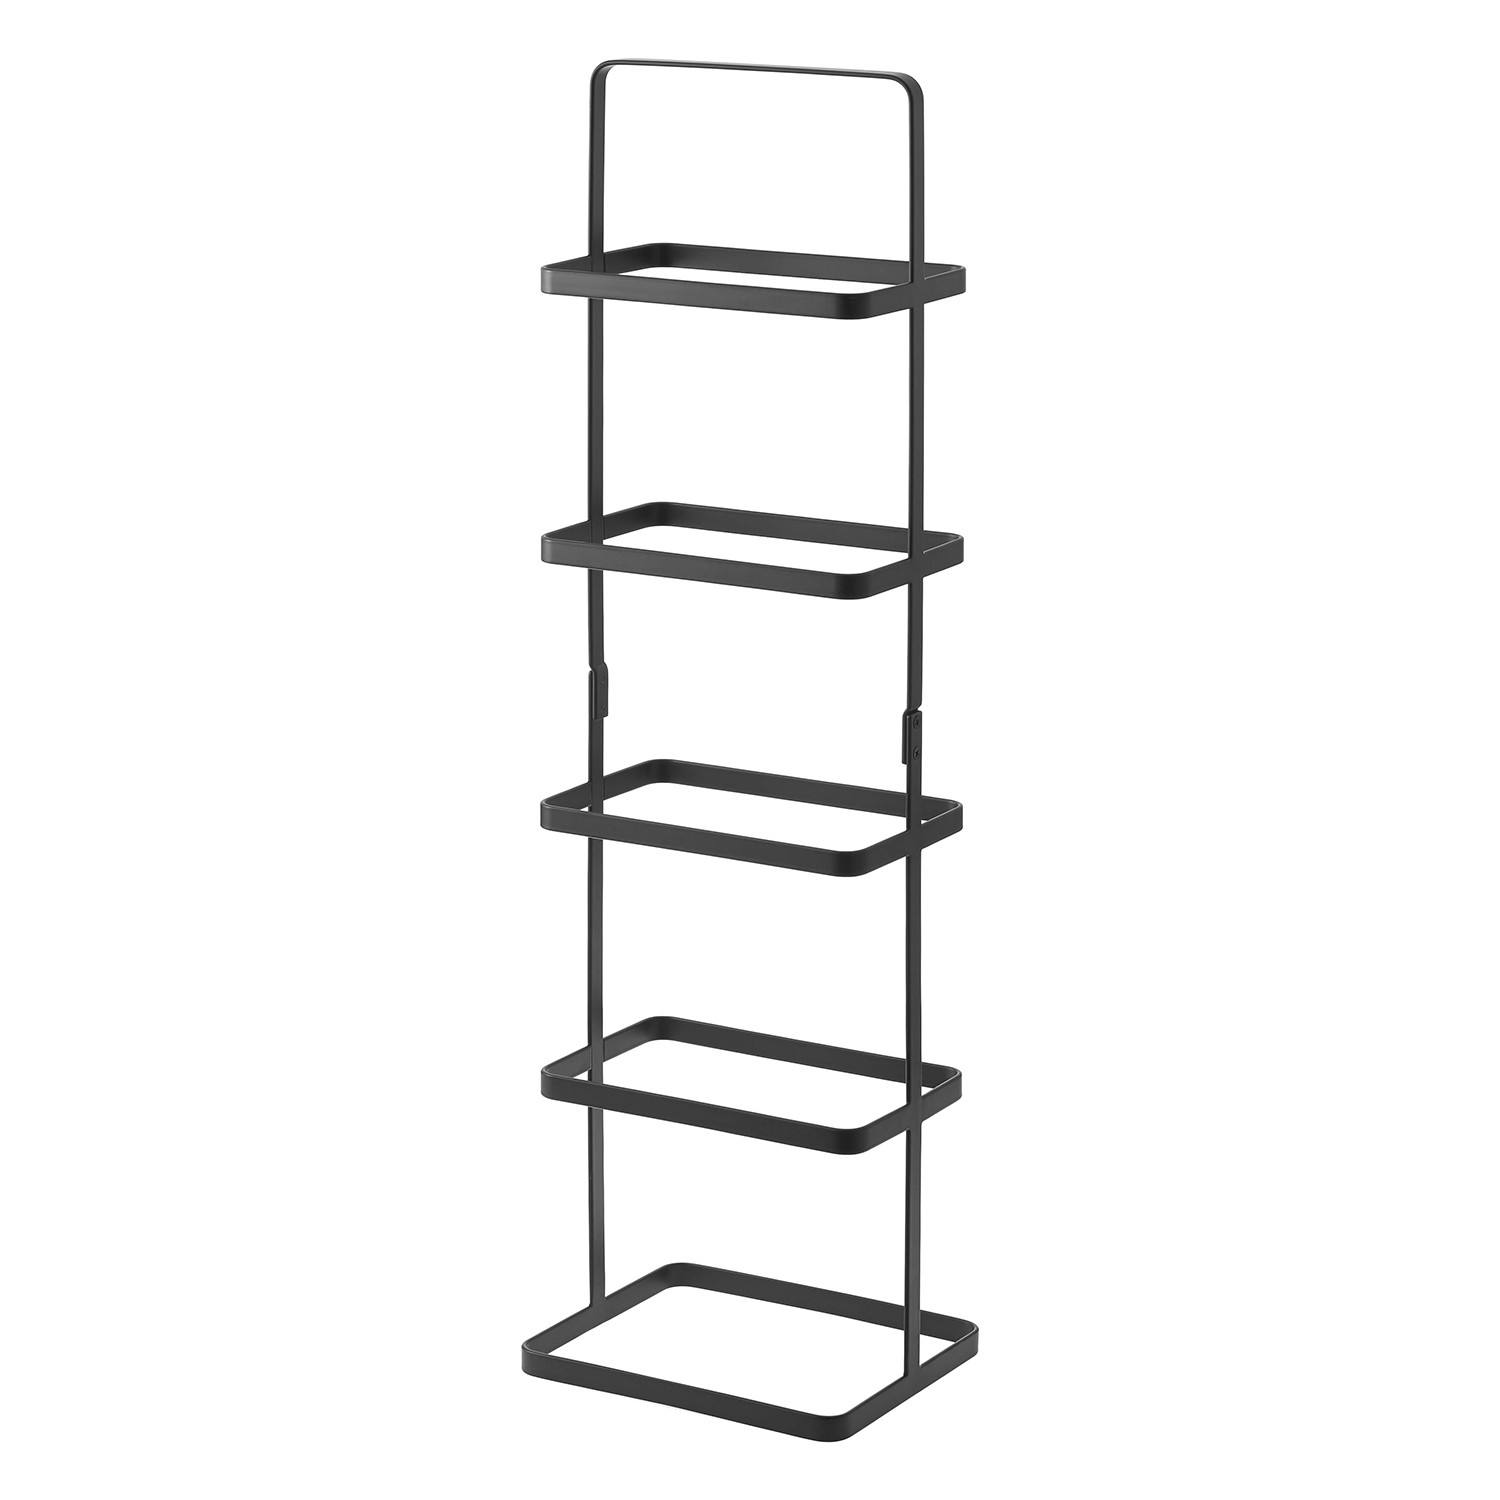 Uncategorized Tower Shoe Rack tower shoe rack white yamazaki touch of modern white